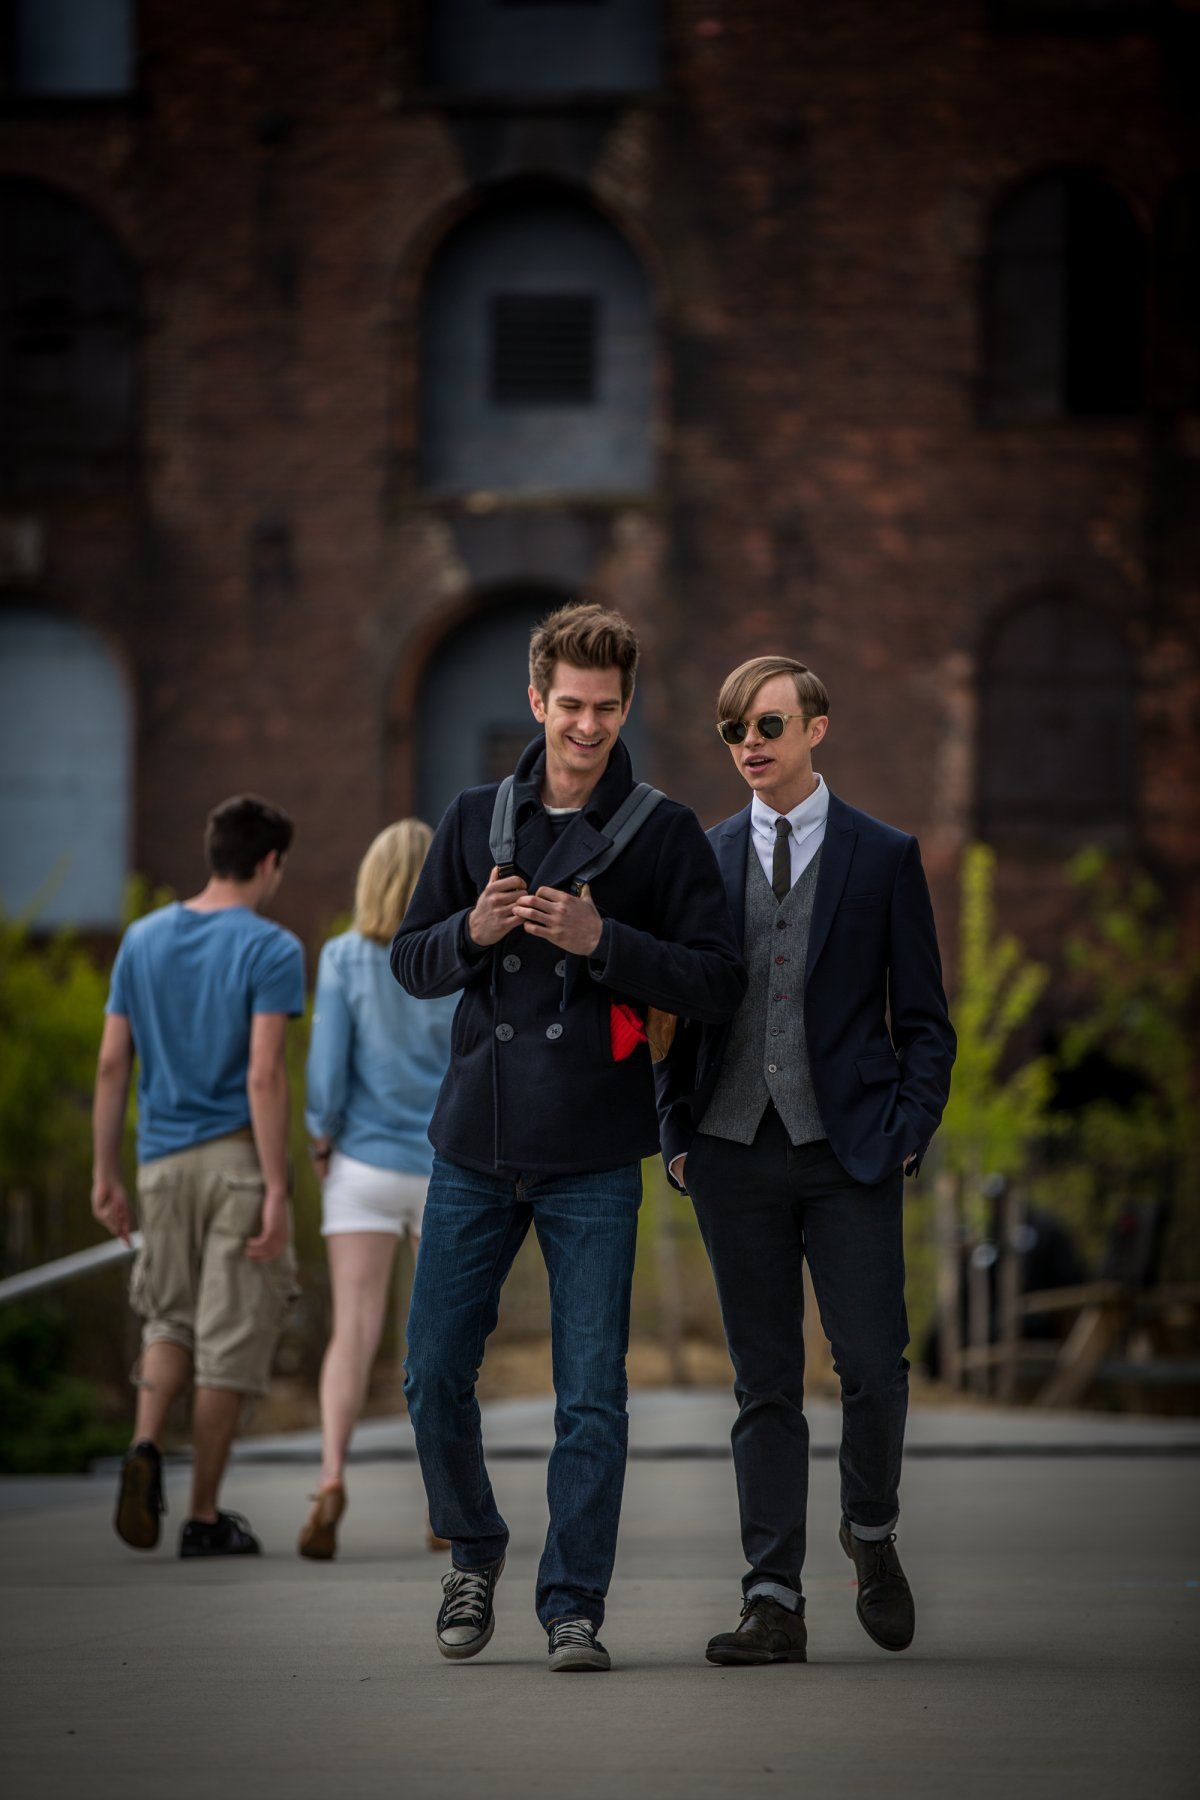 peter parker real life - Cerca con Google